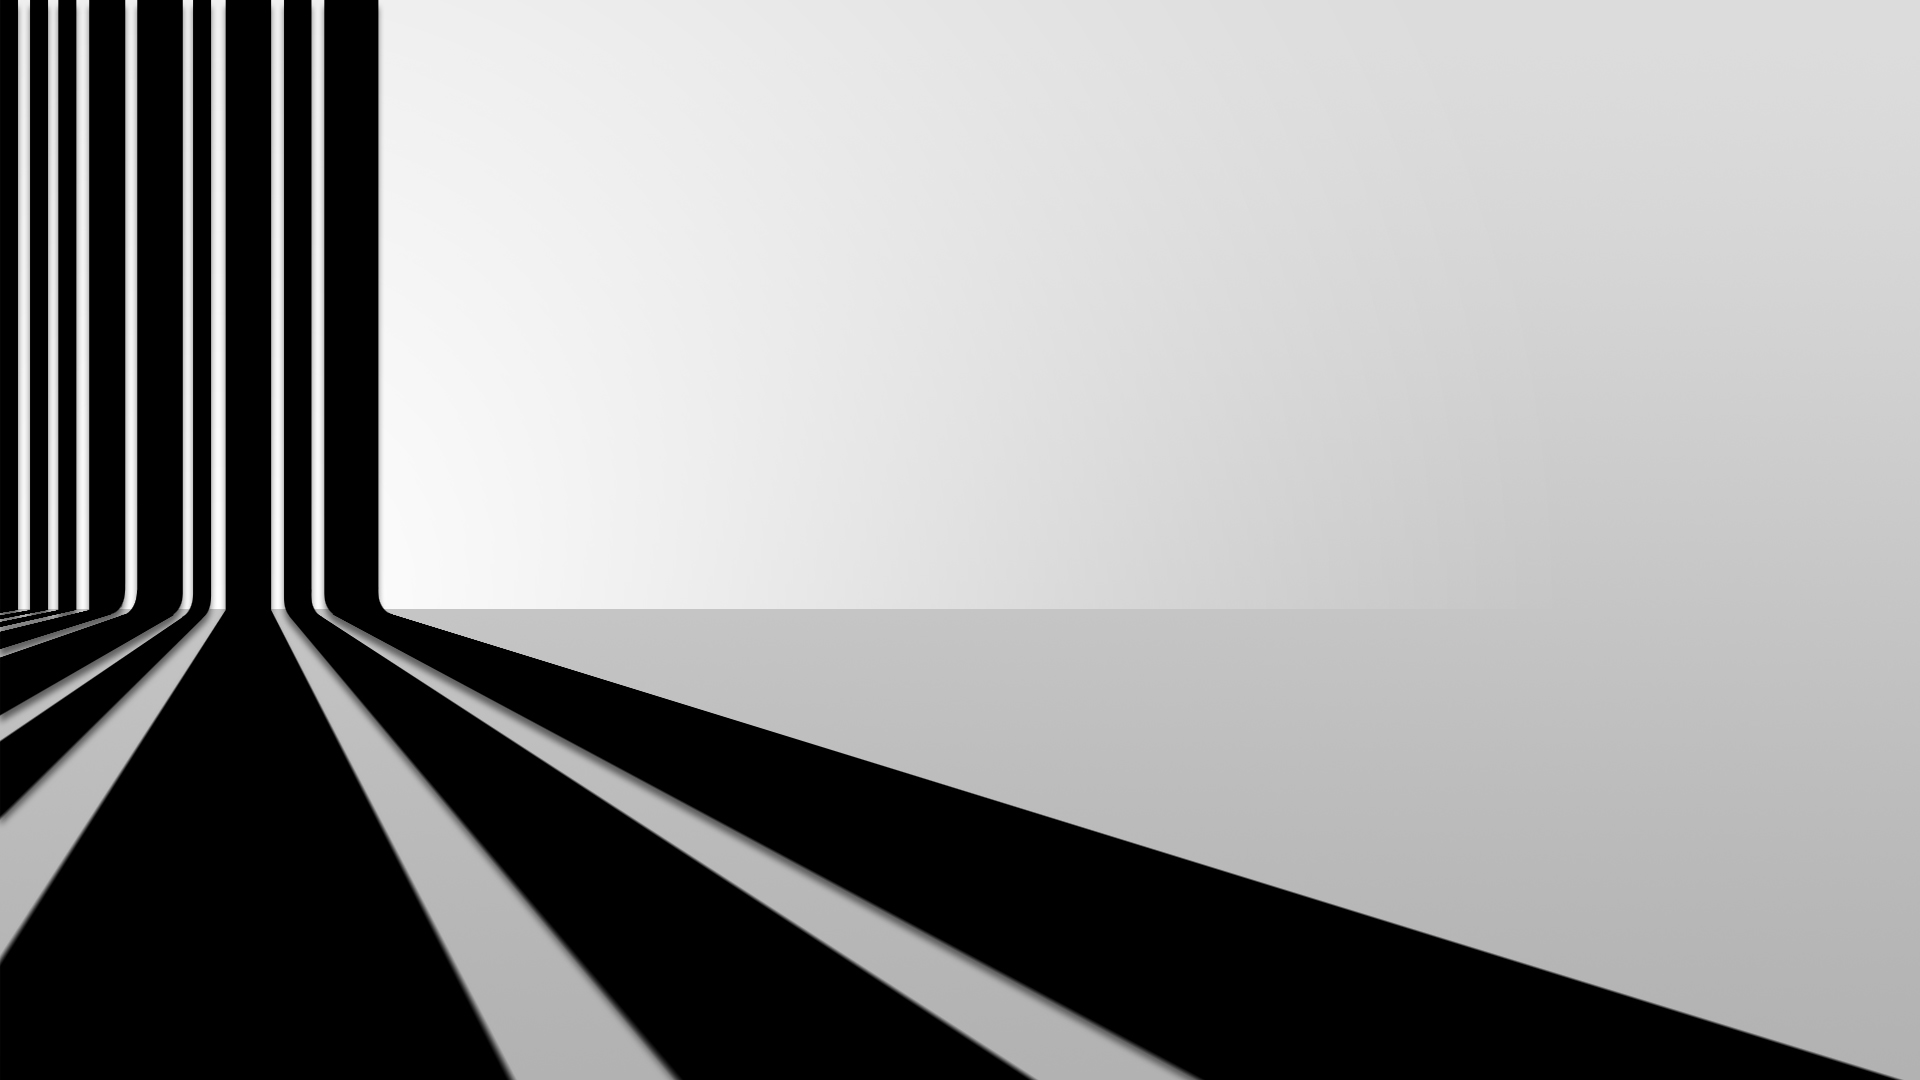 Black and White vector 1920x1080